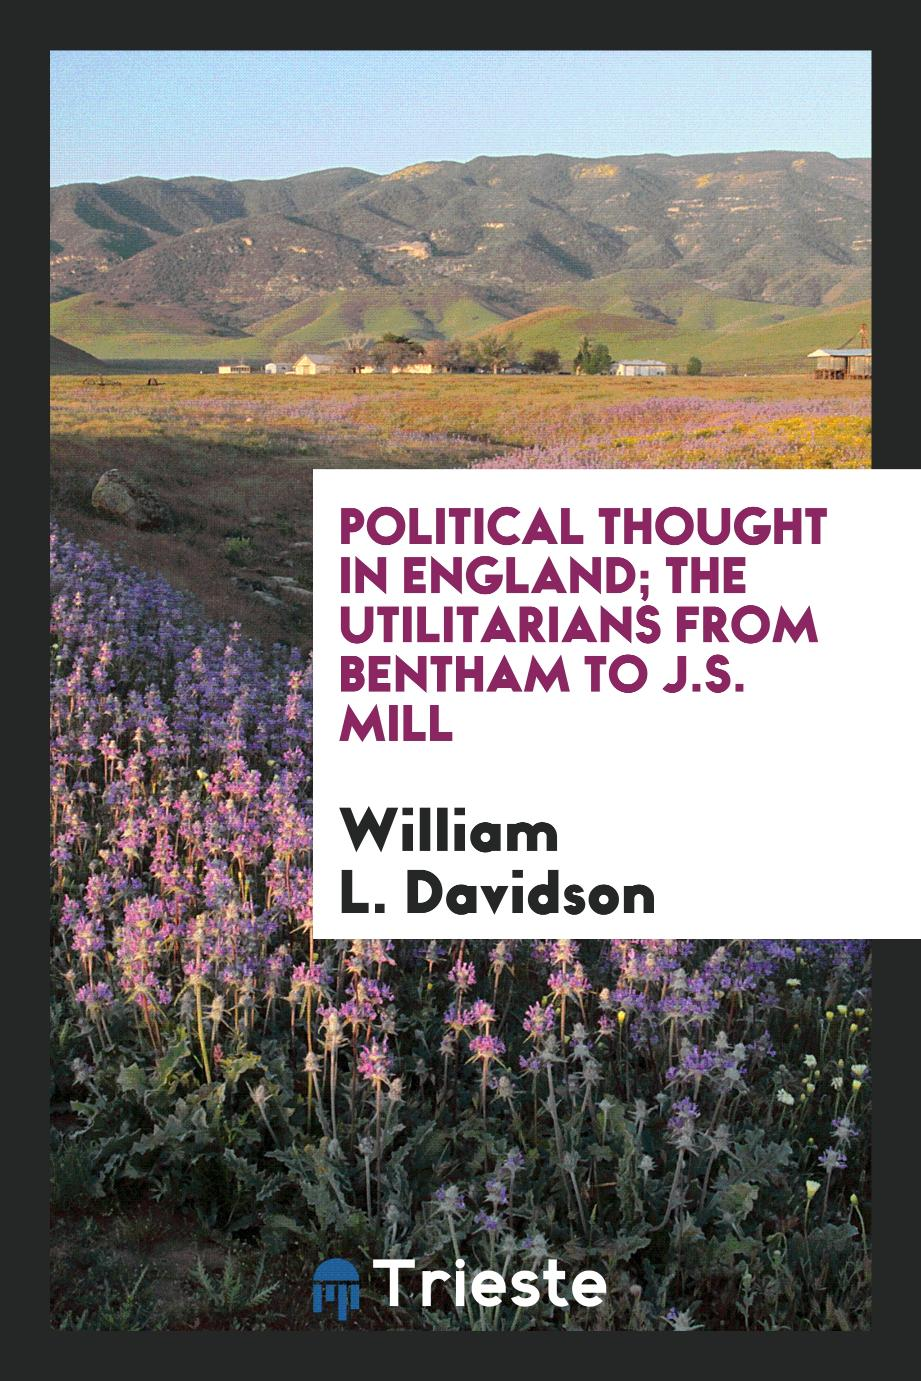 Political thought in England; the utilitarians from Bentham to J.S. Mill